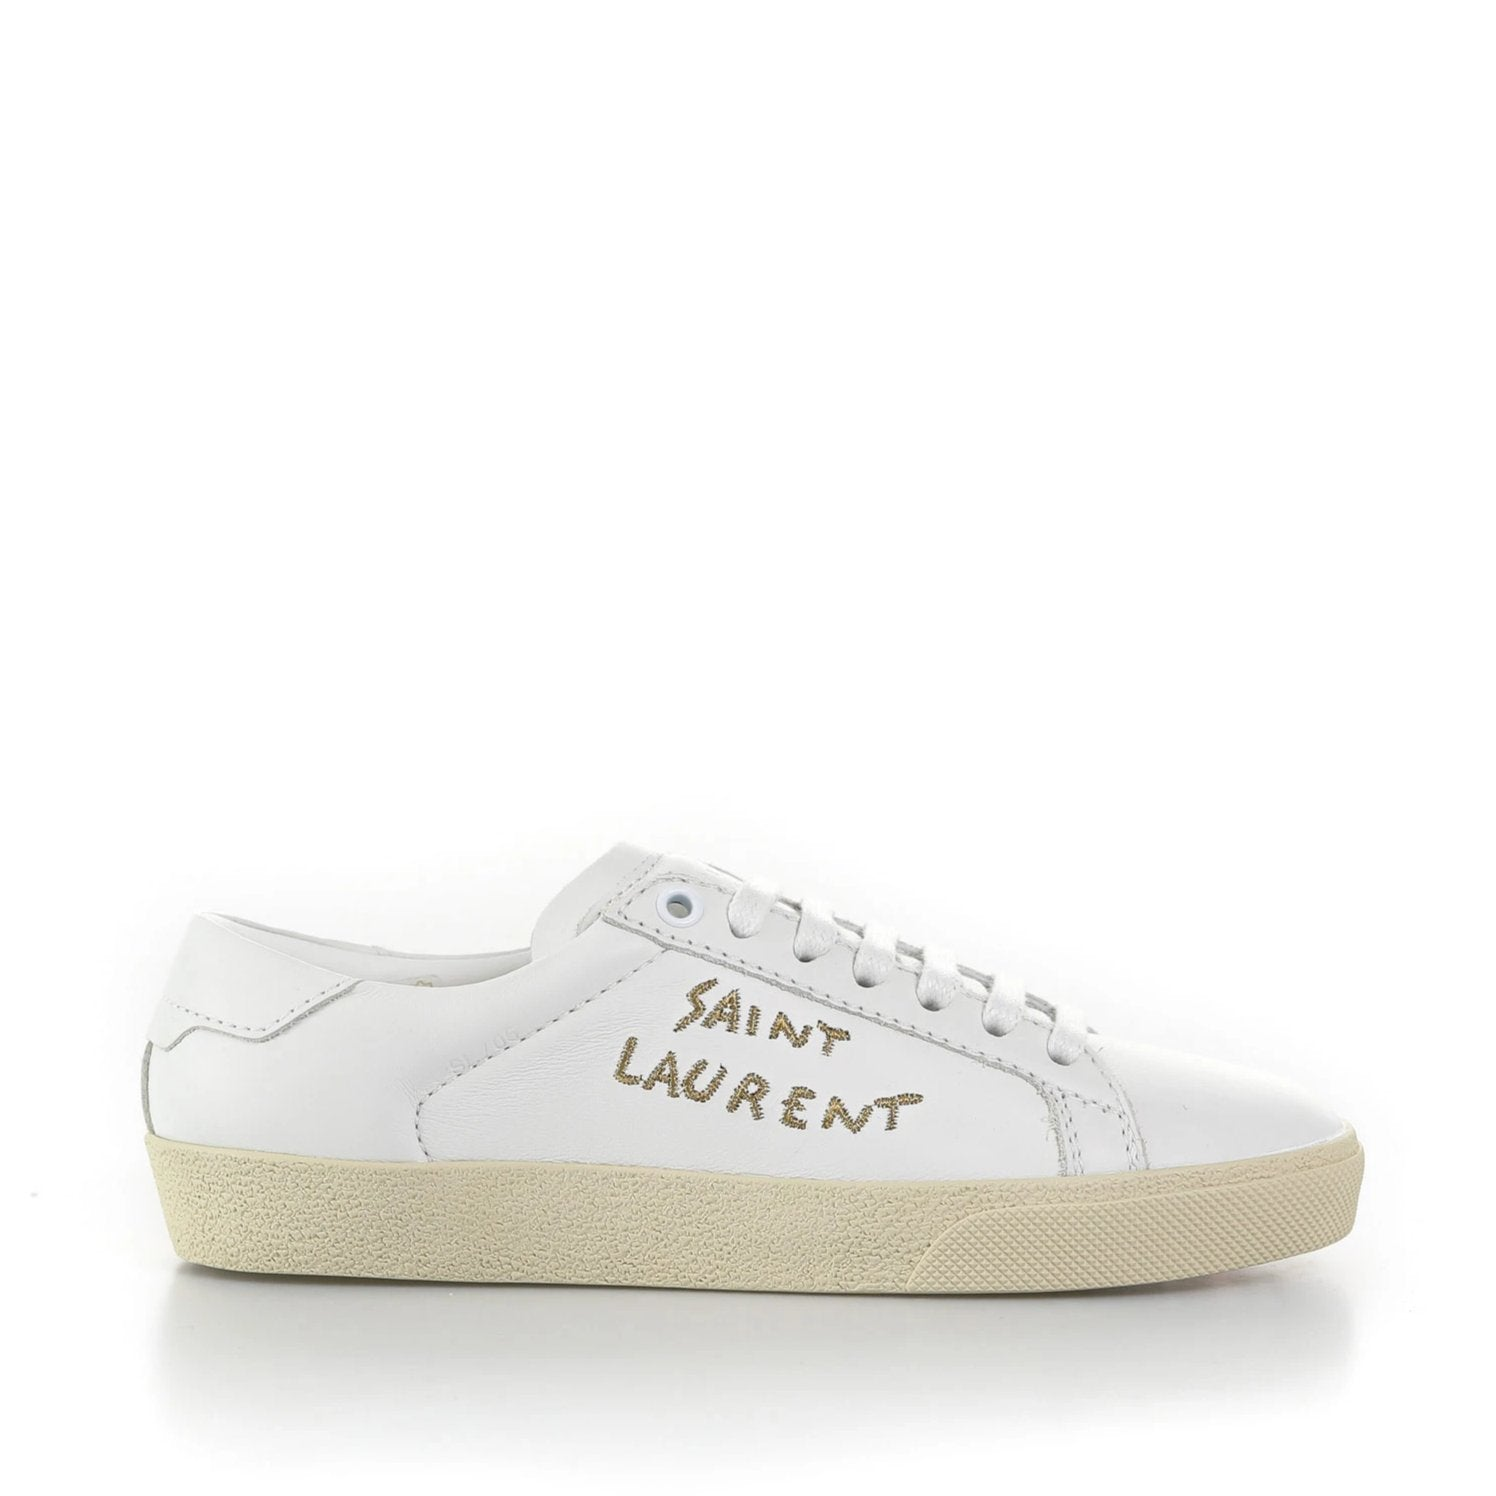 Yves Saint Laurent Court Classic Leather Sneakers-YVES SAINT LAURENT-SHOPATVOI.COM - Luxury Fashion Designer